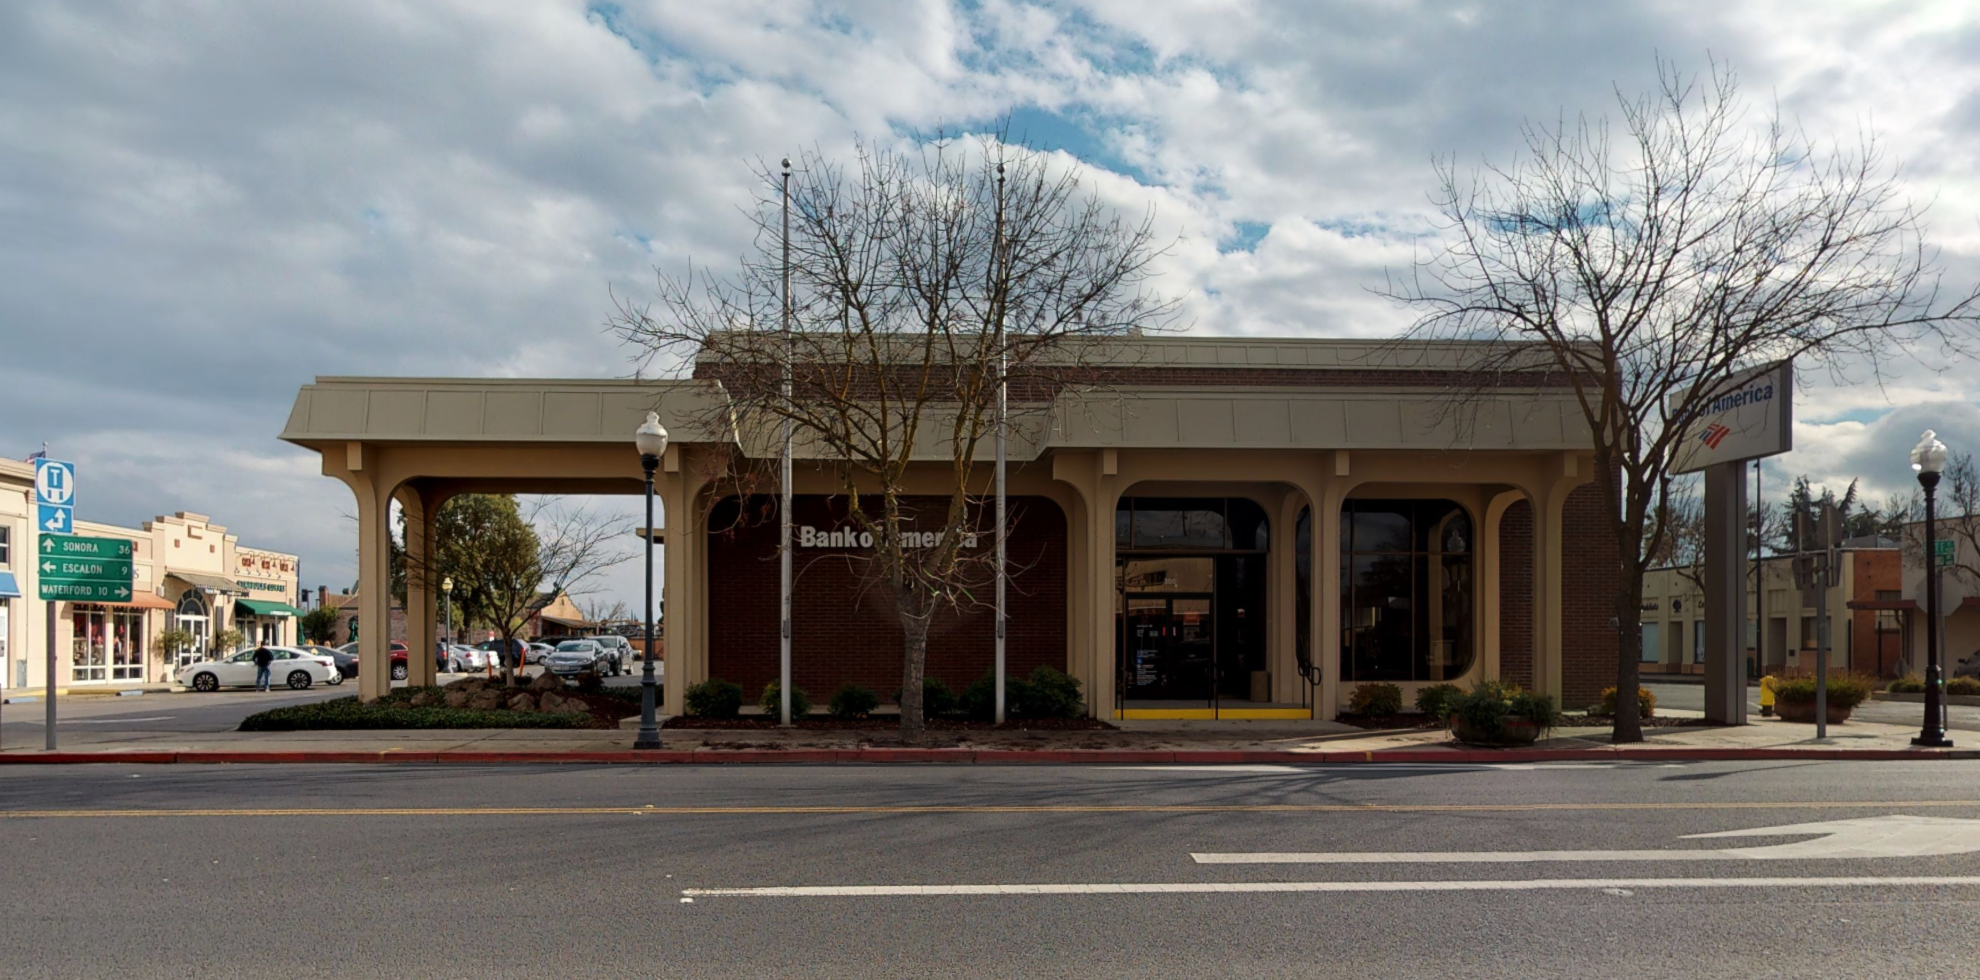 Bank of America financial center with drive-thru ATM | 305 E F St, Oakdale, CA 95361